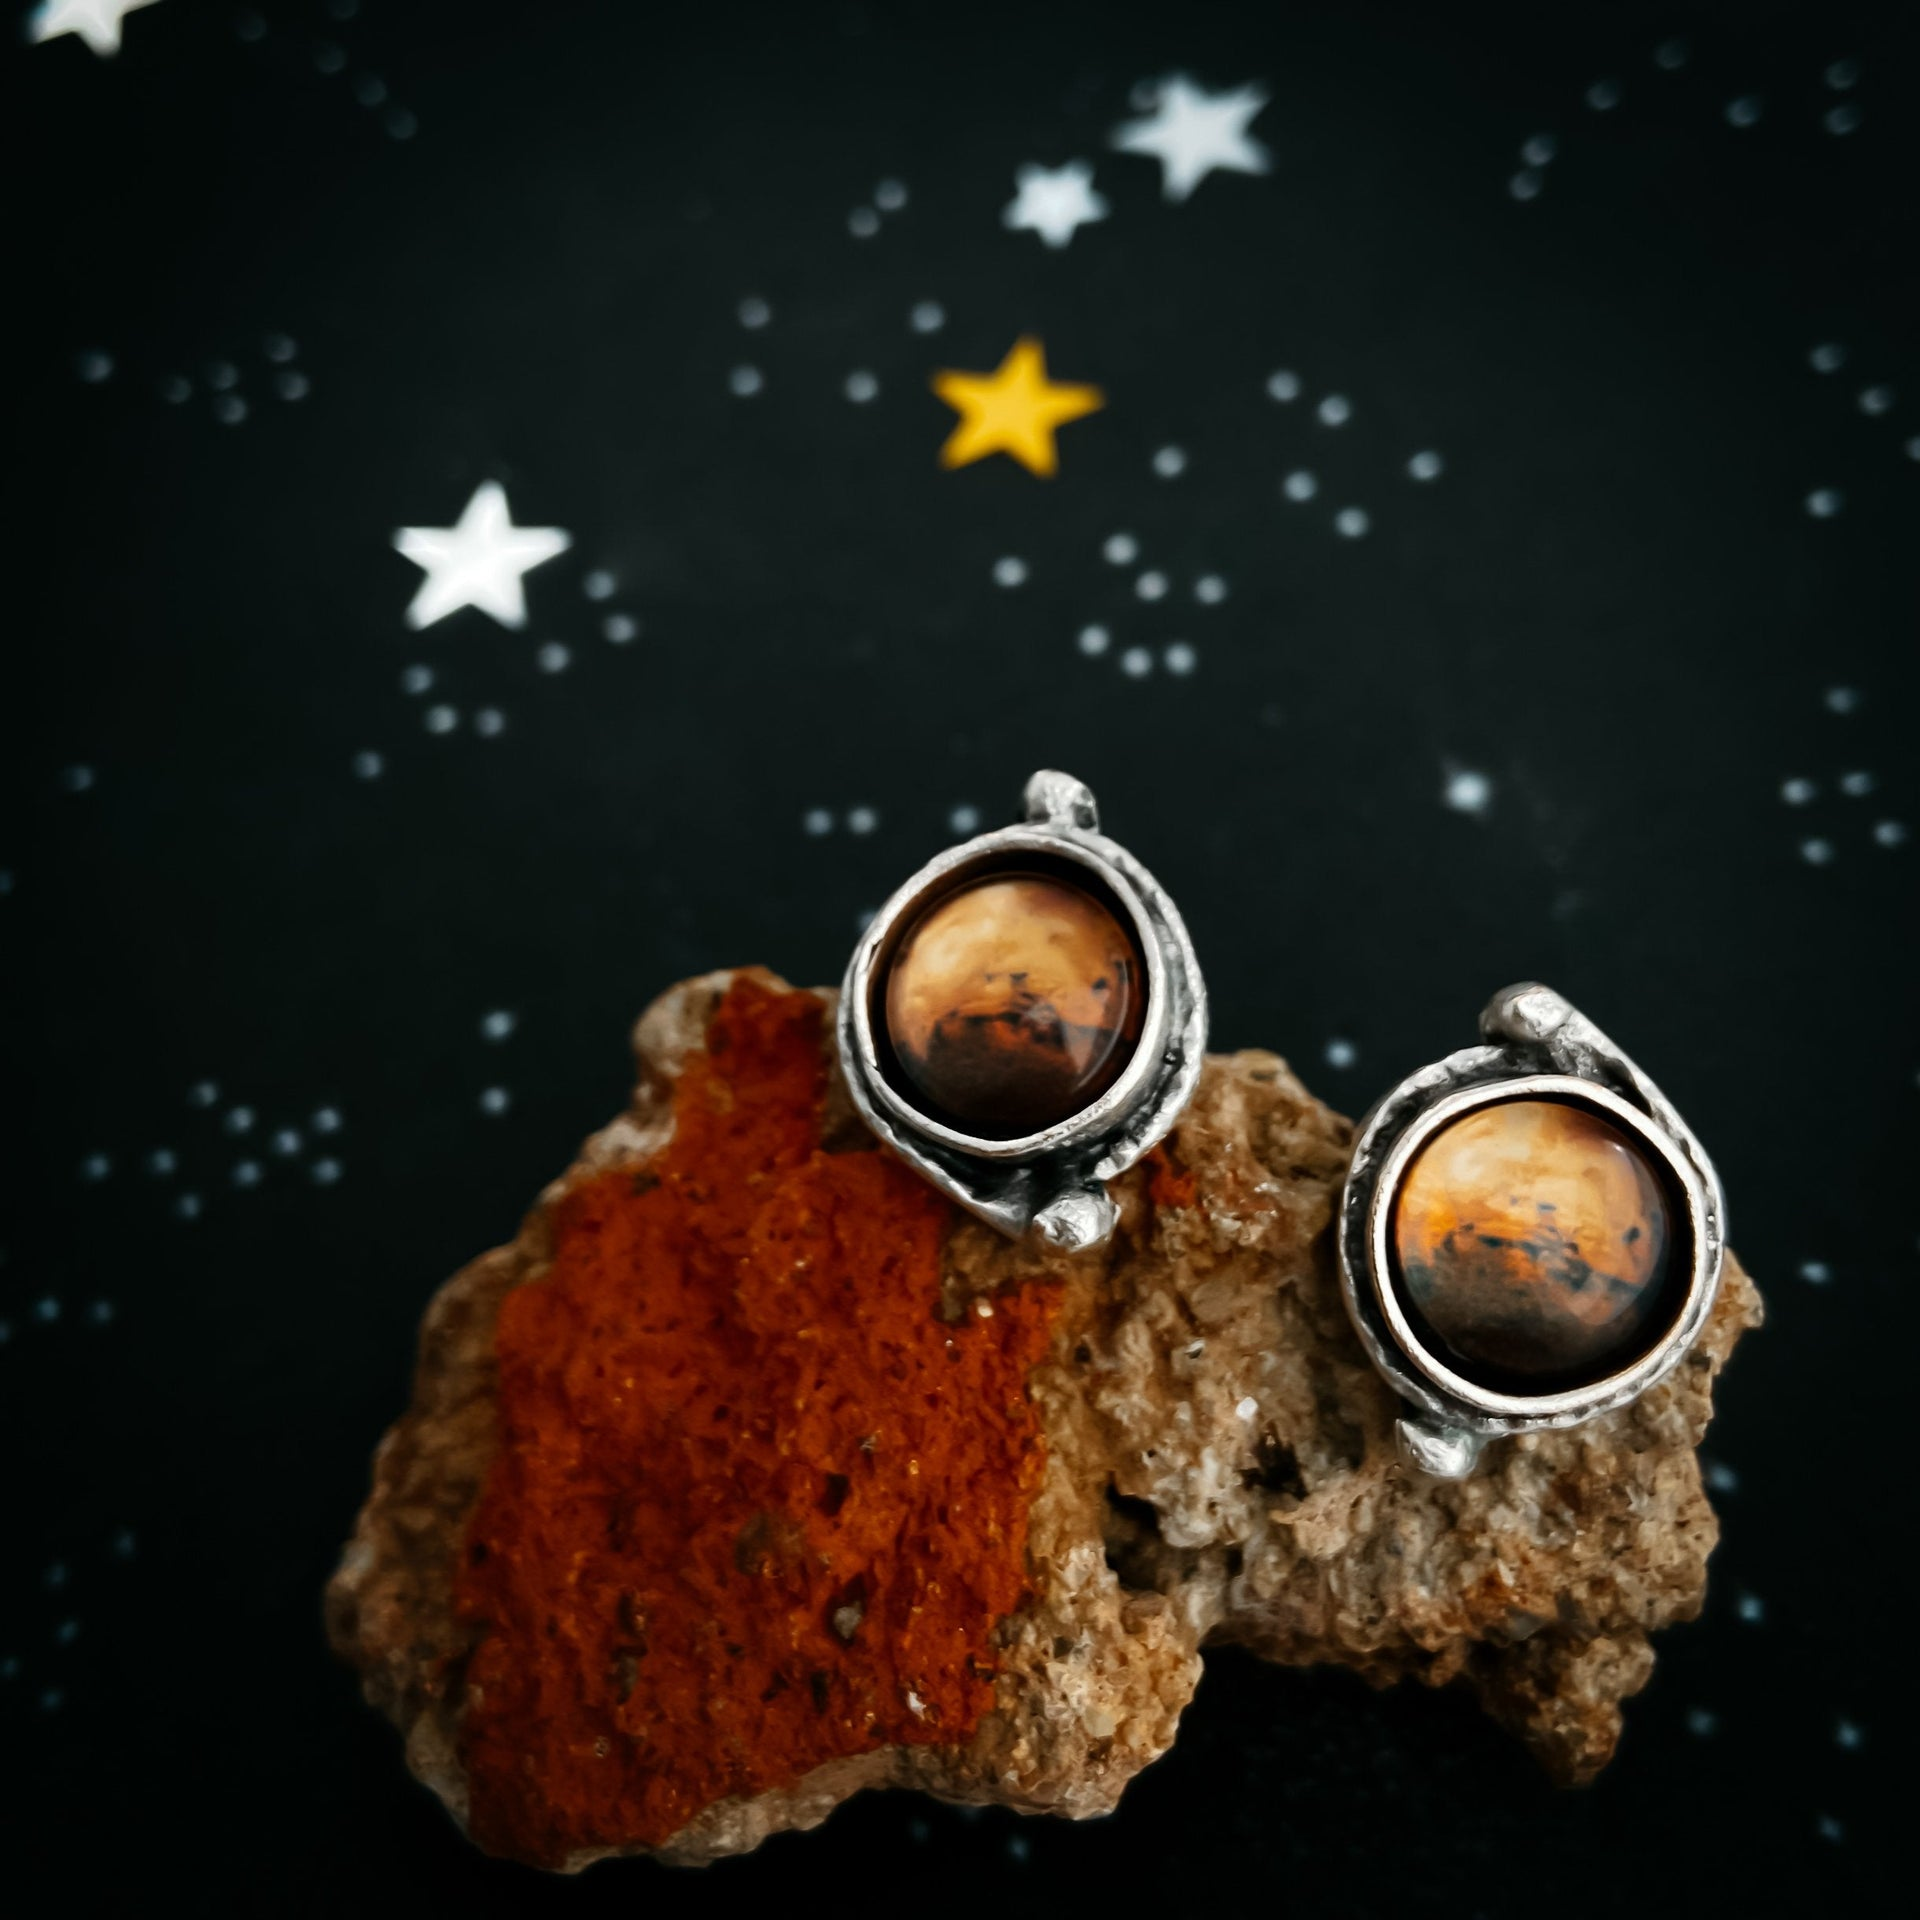 Mars and Moons Earrings - Stud or Leverback - Yugen Tribe